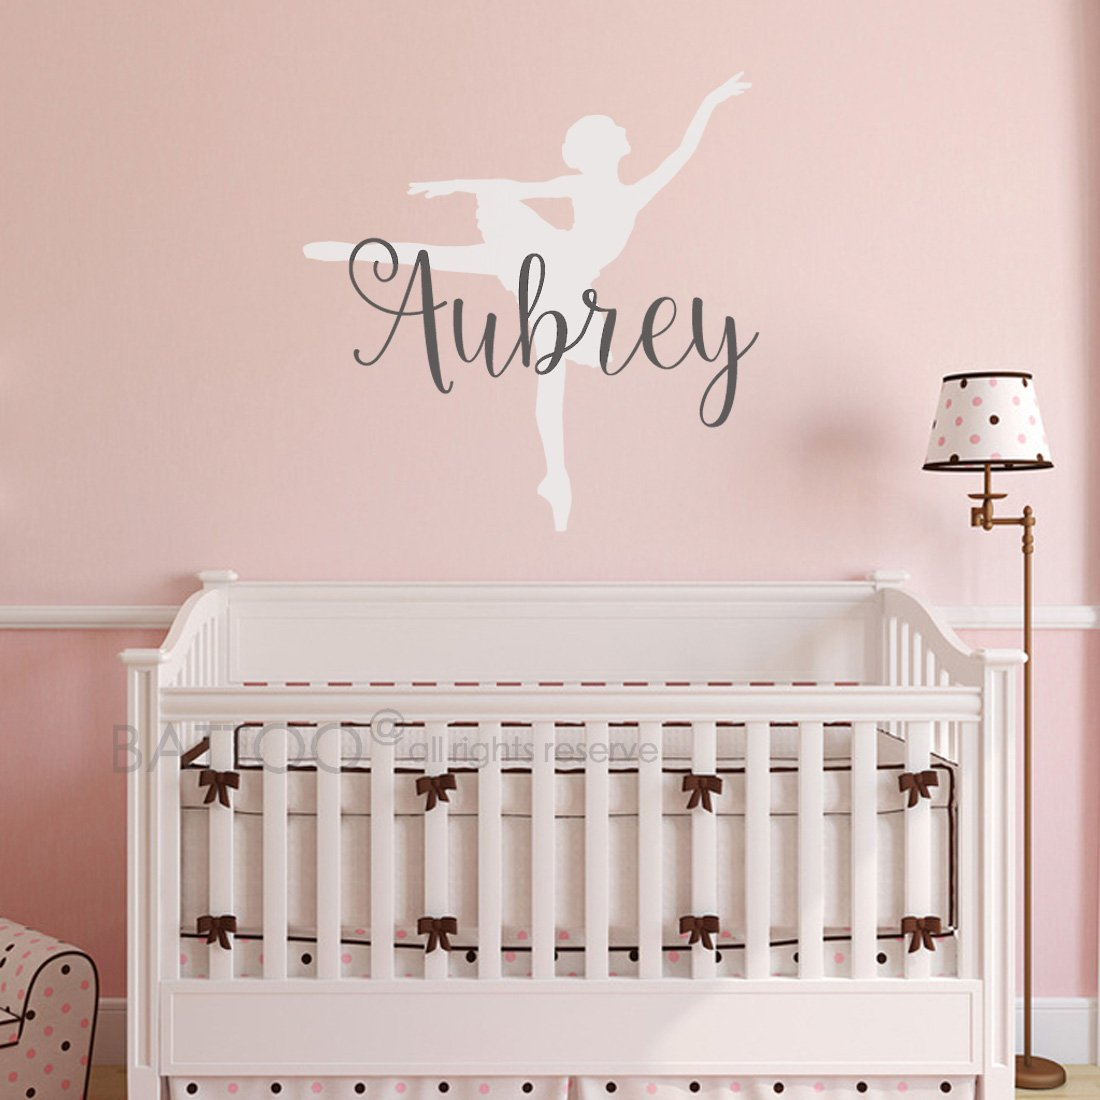 BATTOO Ballerina Name Wall Decal - Ballet Wall Decal - Personalized Nursery Wall Decal - Ballet - Girls Name Wall Decal - Custom Name Wall Decal - Dance Wall Decal